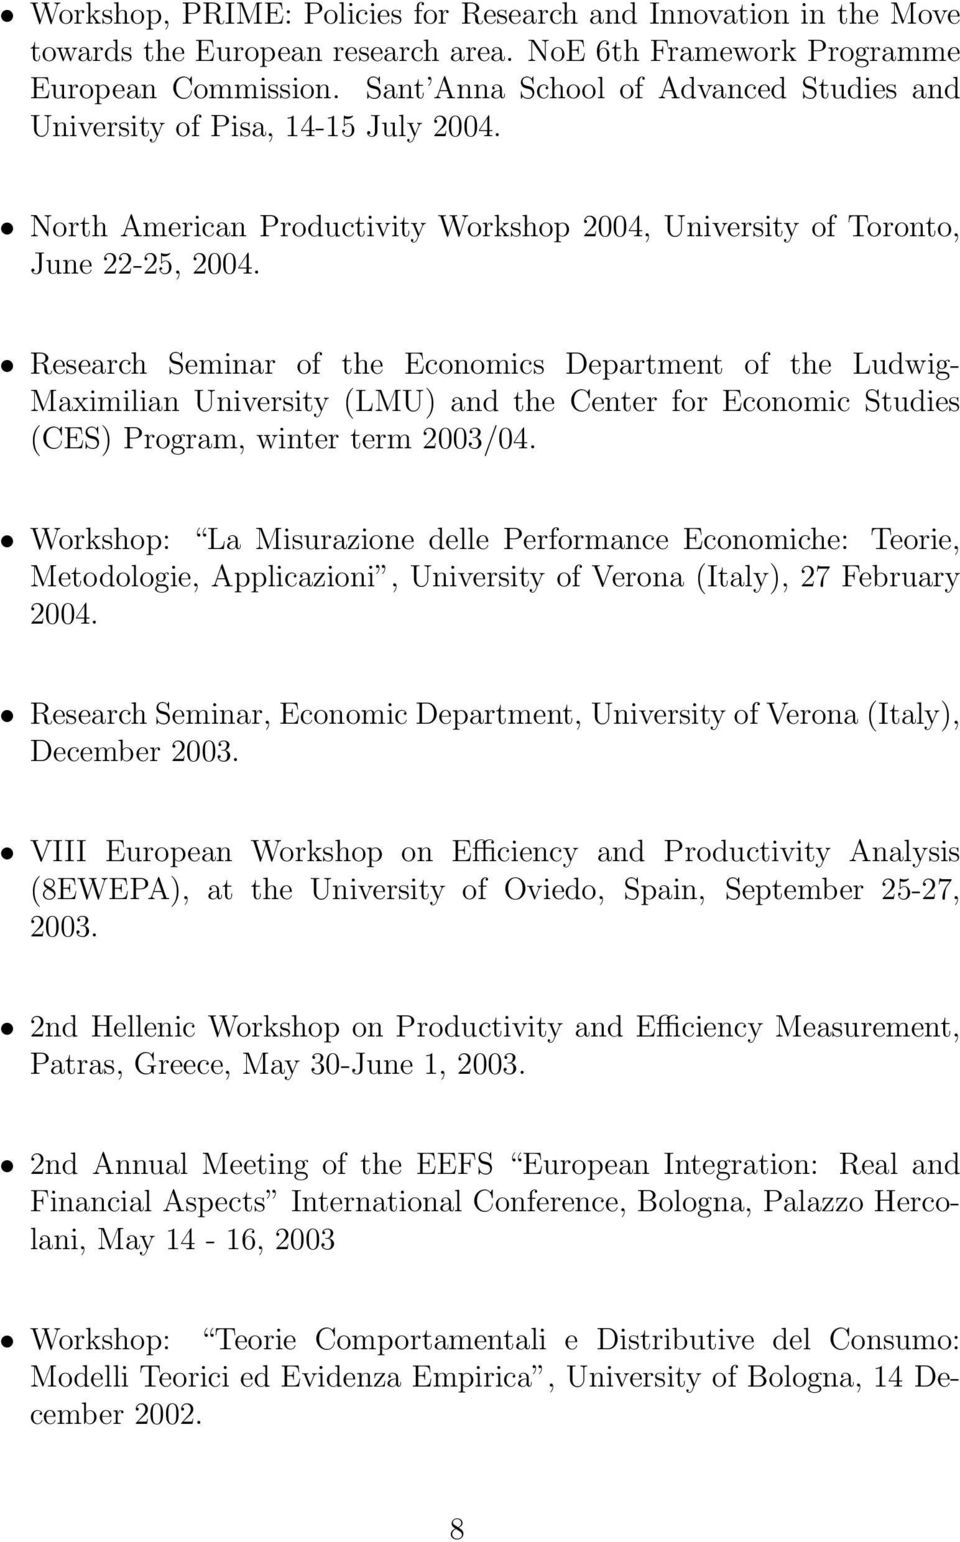 Research Seminar of the Economics Department of the Ludwig- Maximilian University (LMU) and the Center for Economic Studies (CES) Program, winter term 2003/04.